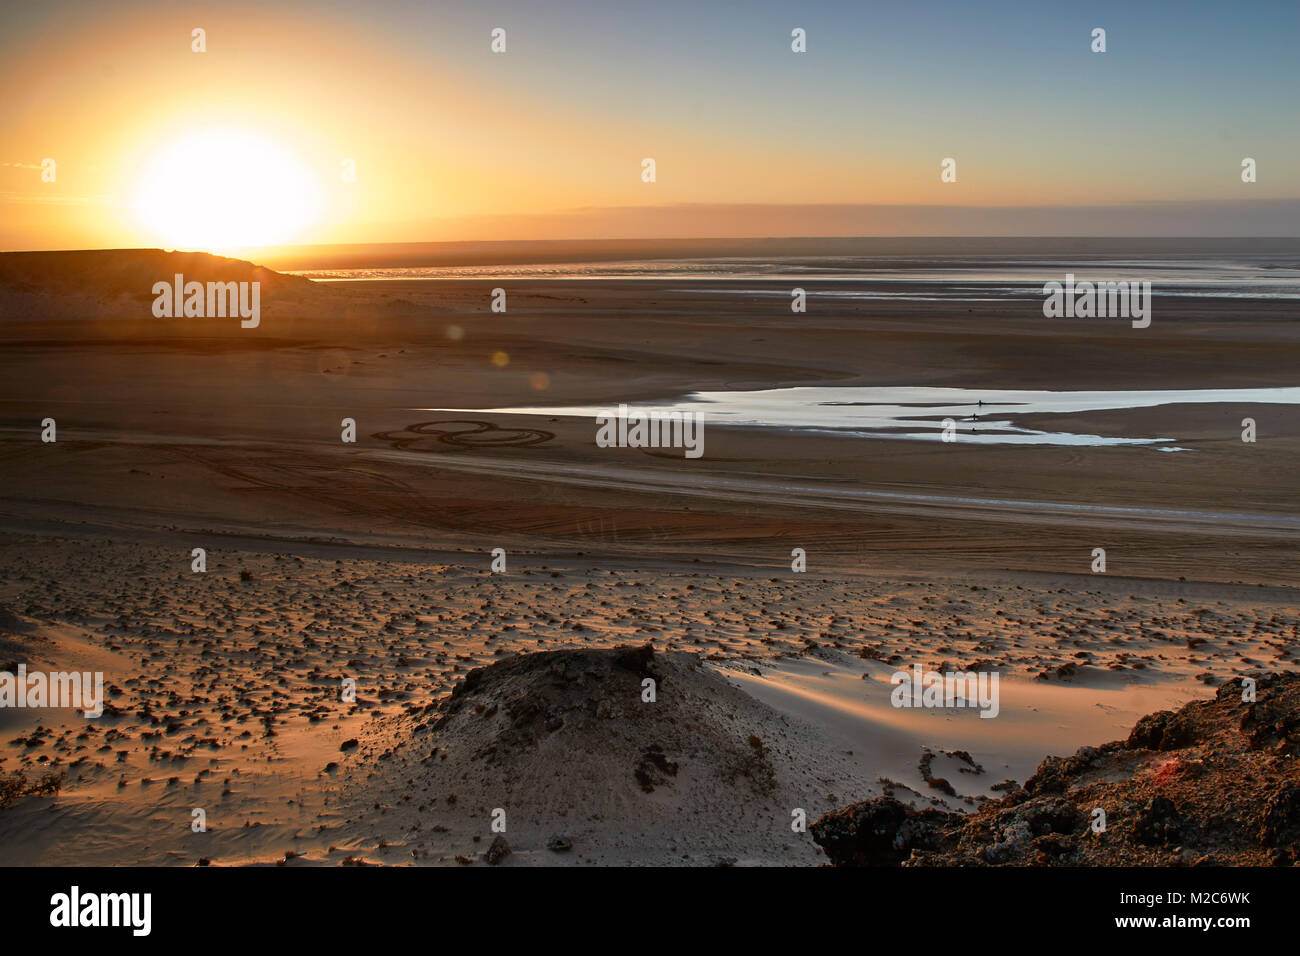 A beautiful sunrise in the Western Sahara - Stock Image